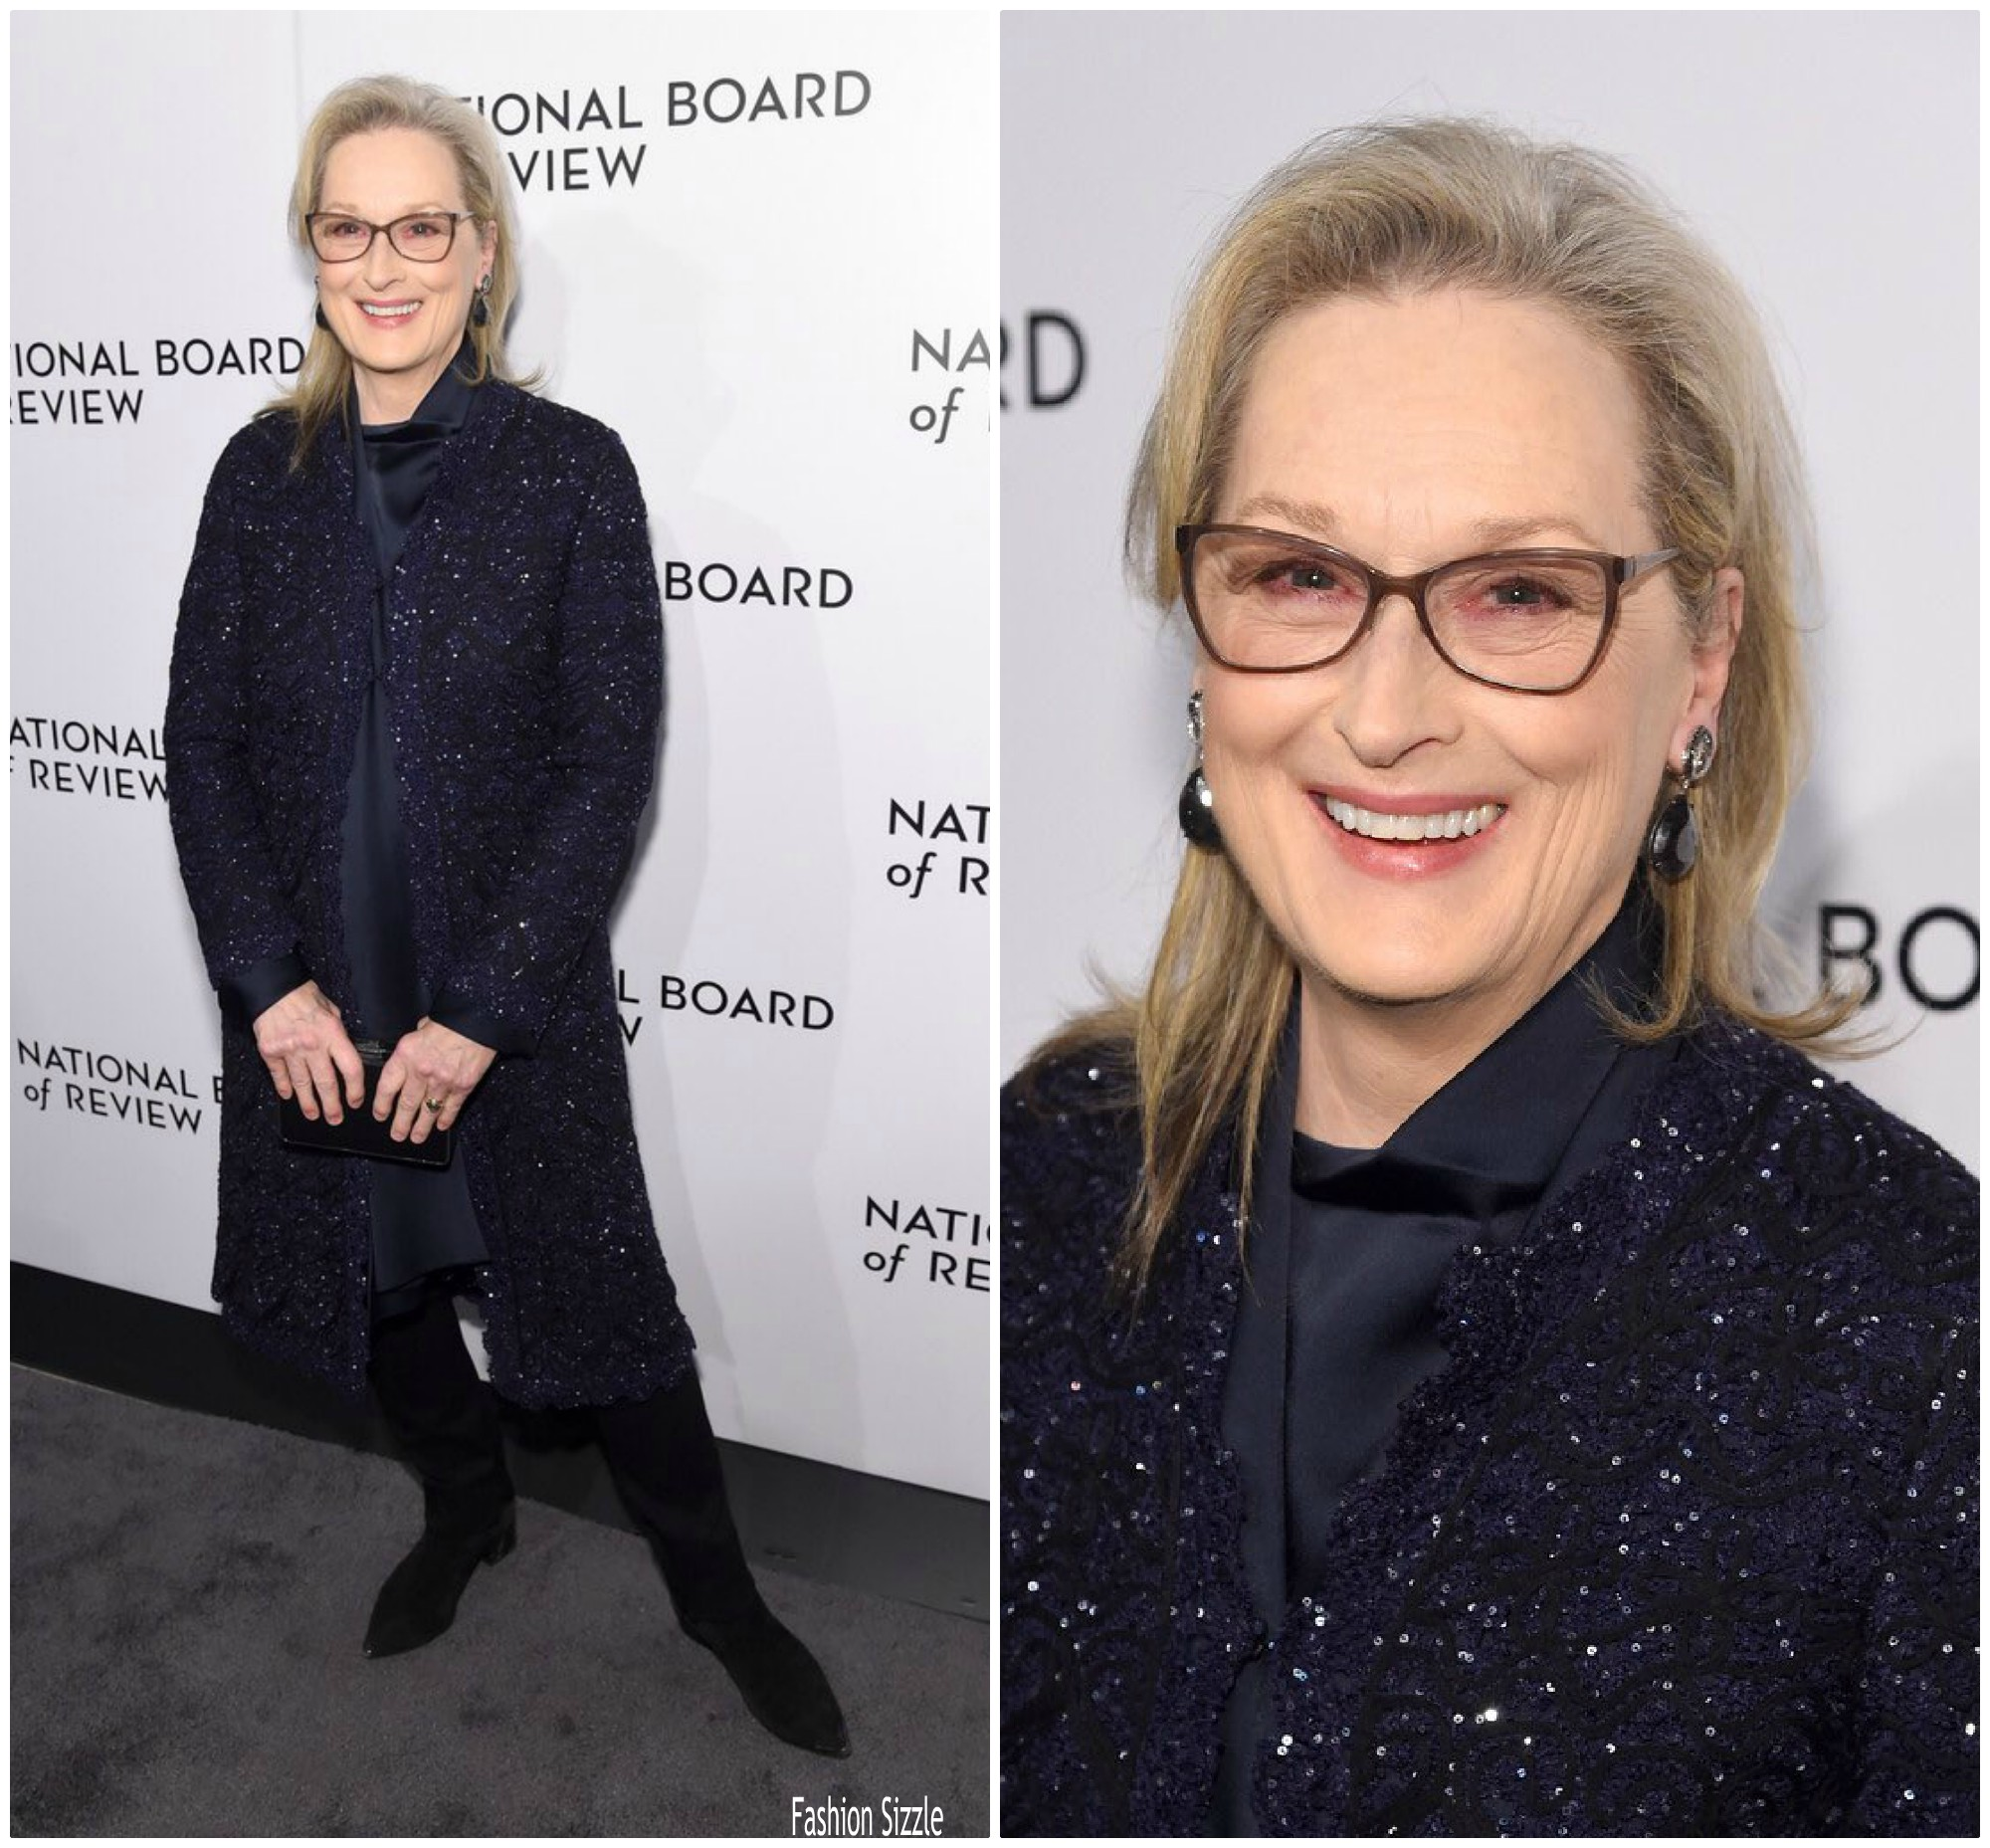 meryl-streep-in-oscar-de-la-renta-2018-national-board-of-review-awards-gala